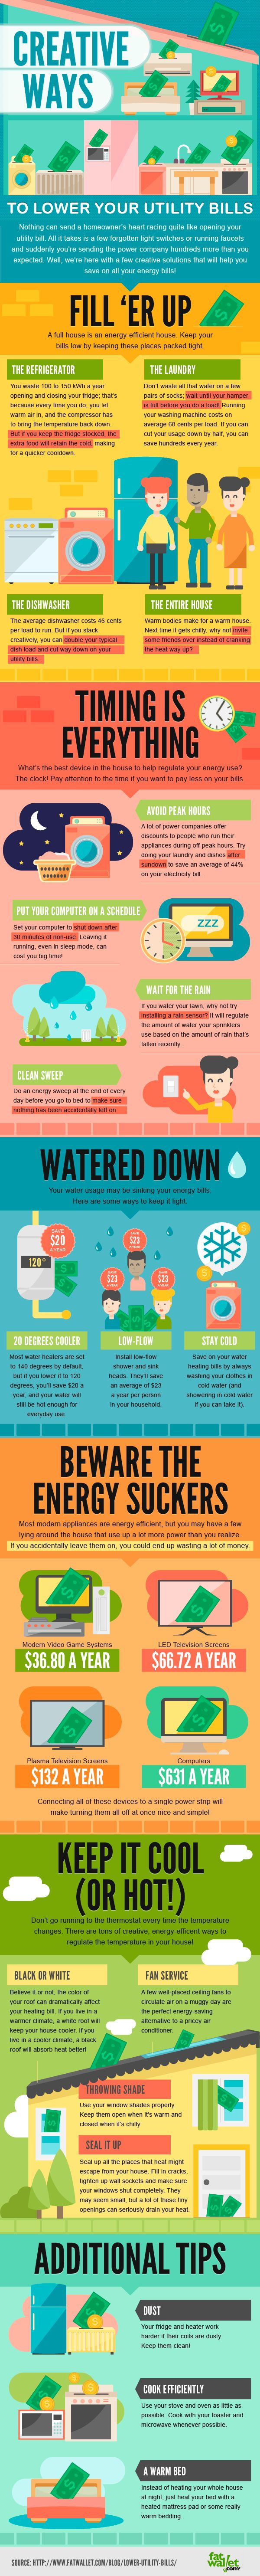 Creative Ways to Lower Your Utility Bills